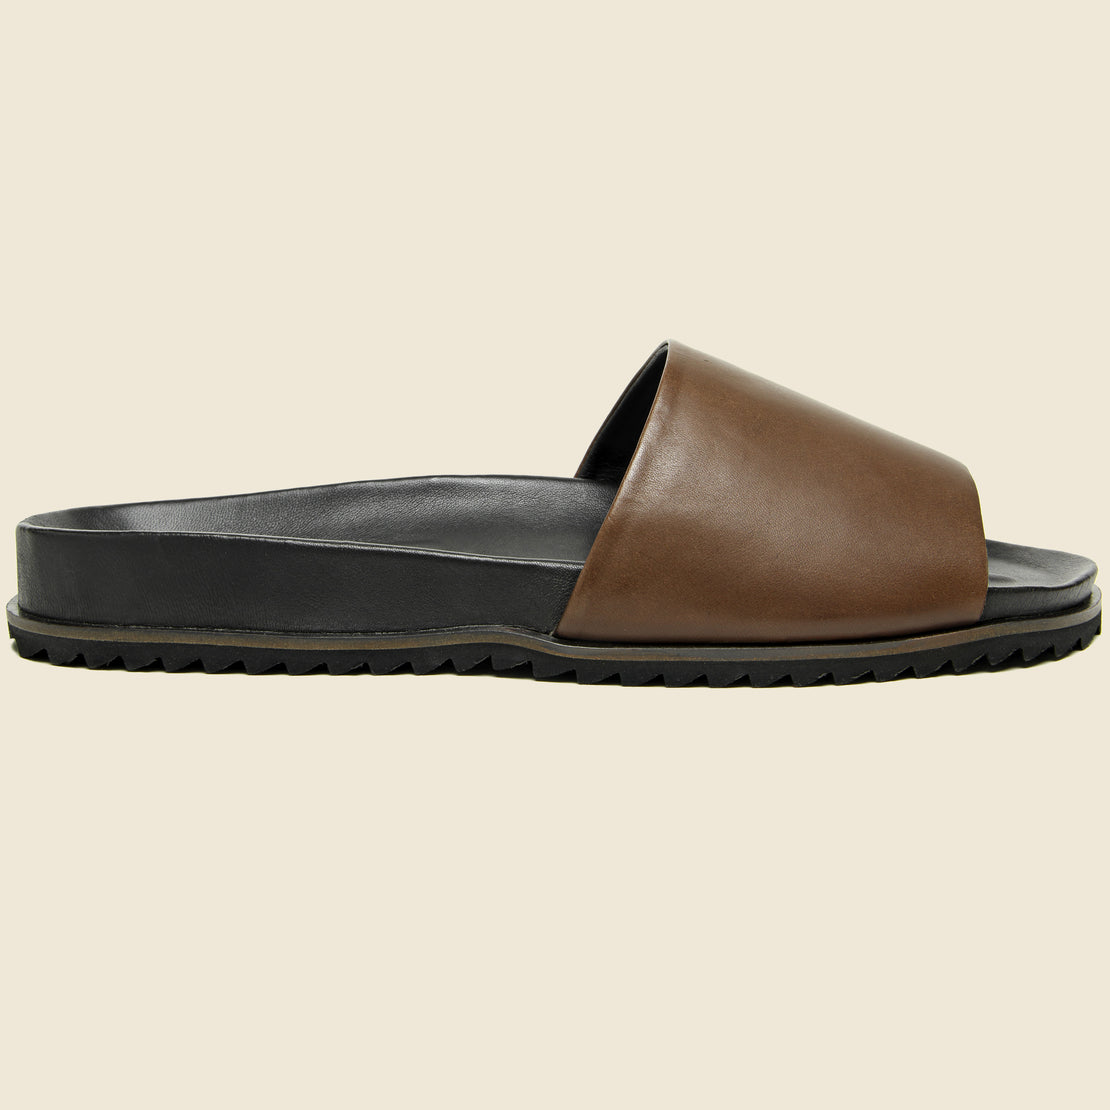 Shoe the Bear Augustin Leather Slide - Brown